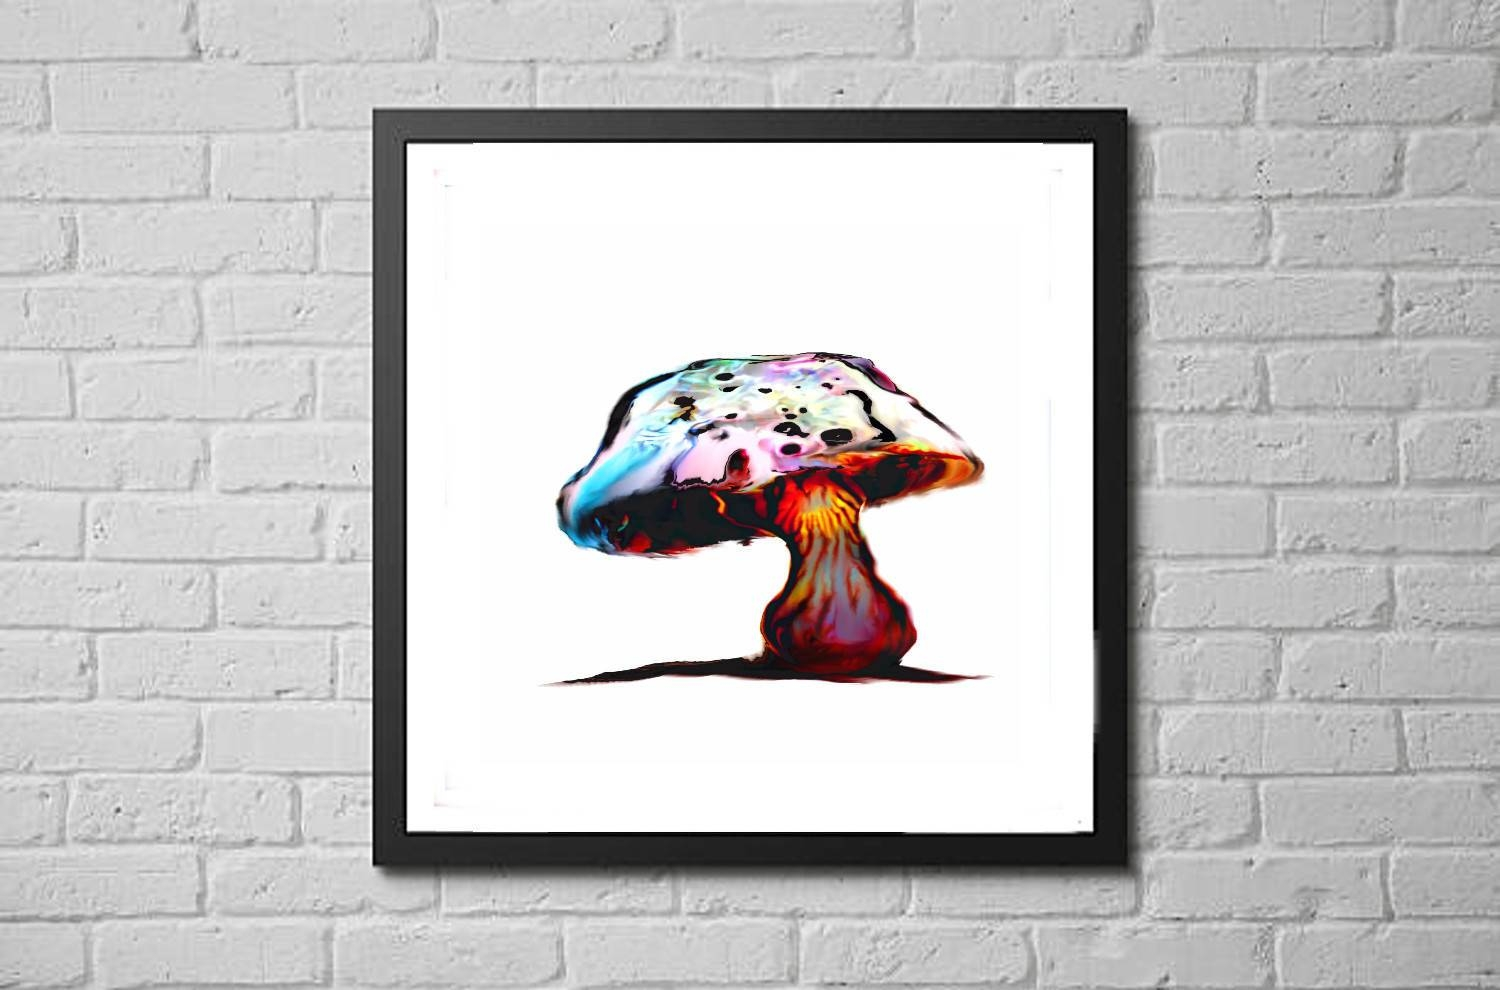 Mushroom Art Print / Nature Fungi Botanical Decor / Trippy Intended For Most Recently Released Mushroom Wall Art (View 8 of 20)